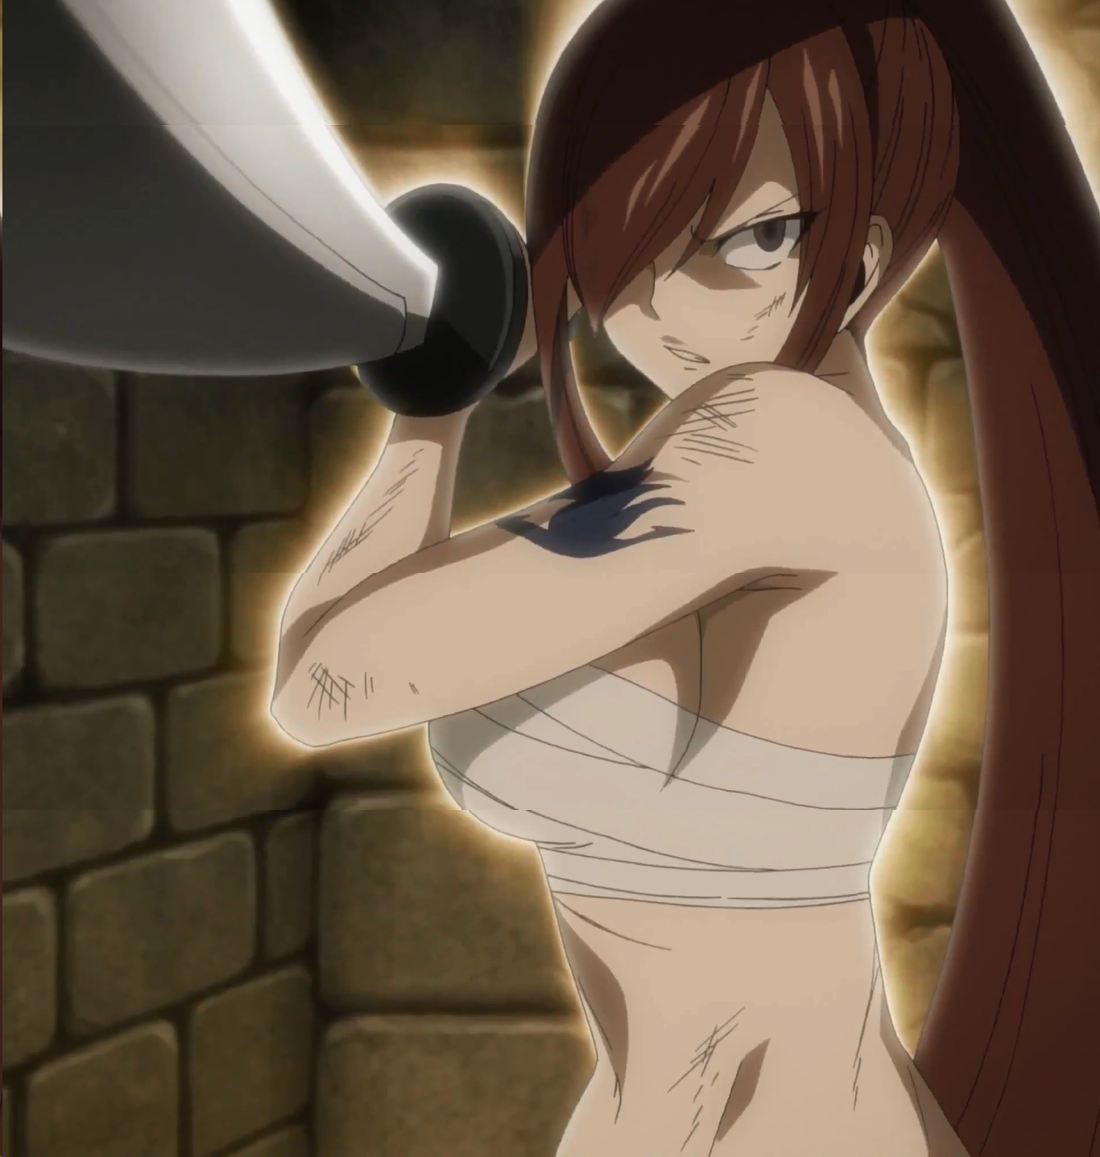 Fairy Tail, Fairy Tail 2014, episode 66, erza scarlet, titania, Uploaded by: Stella Scarlet Segui